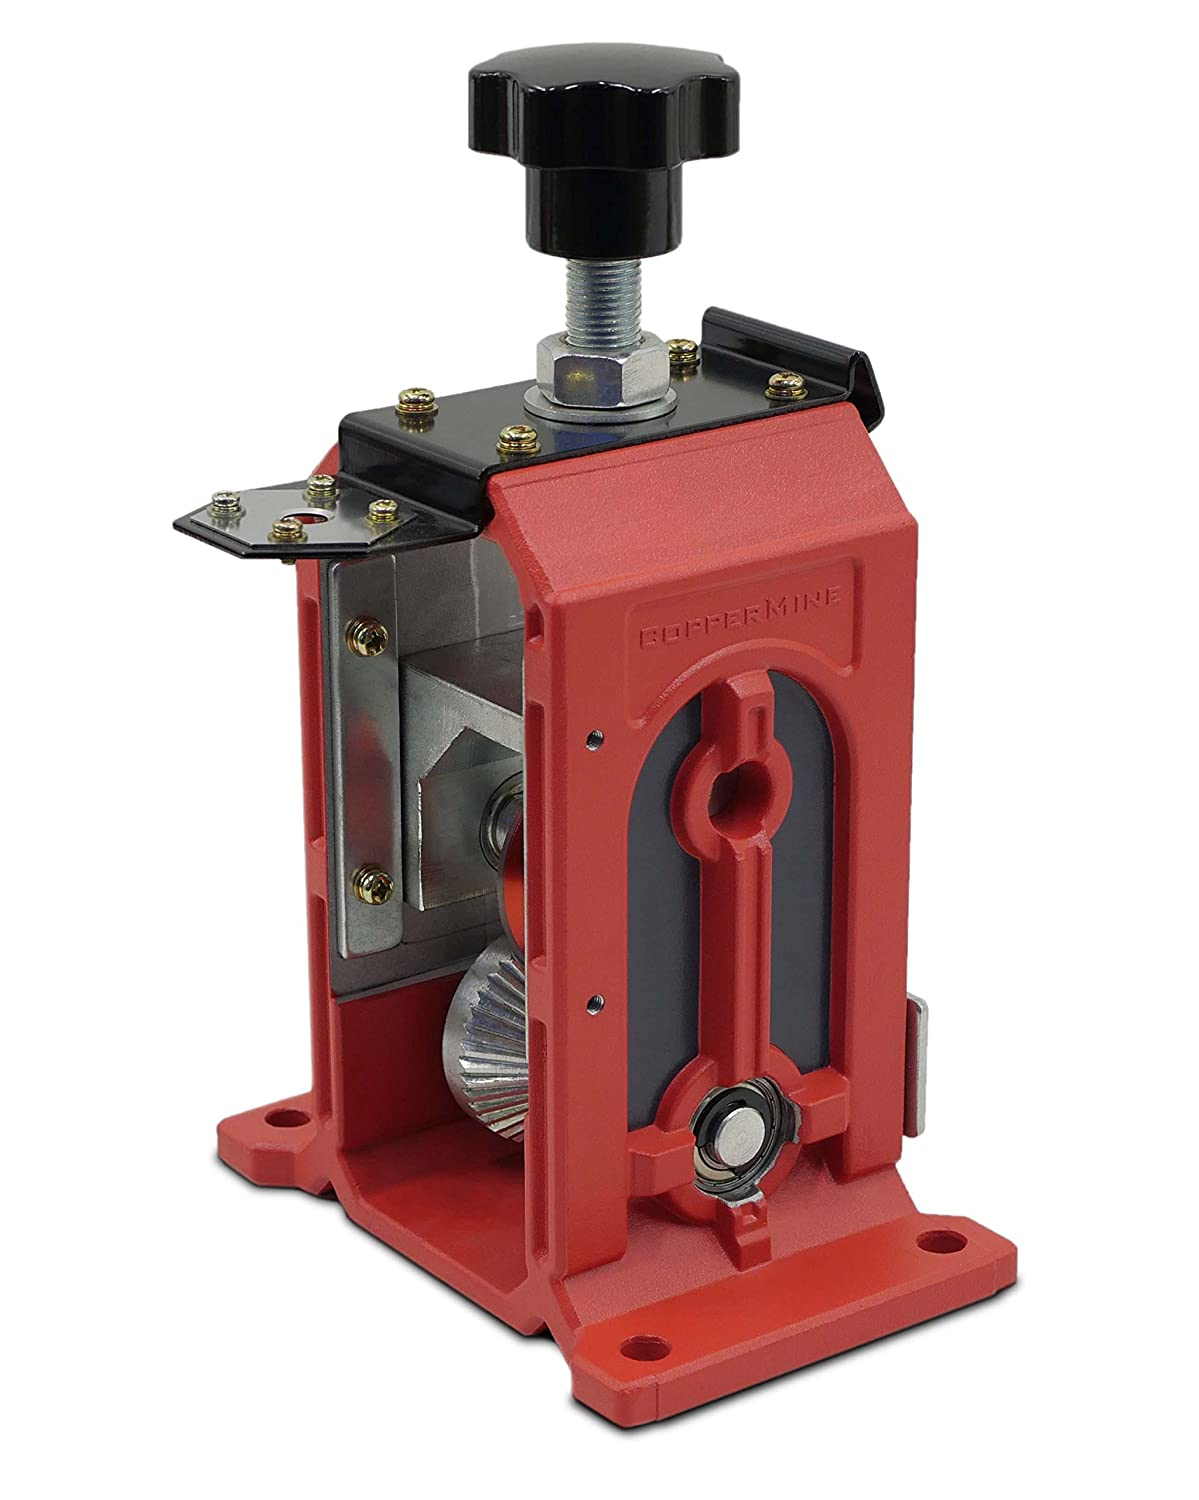 Professional Manual Cable STRIPPING MACHINE RECOVERY COPPER m3 piombotech Italy